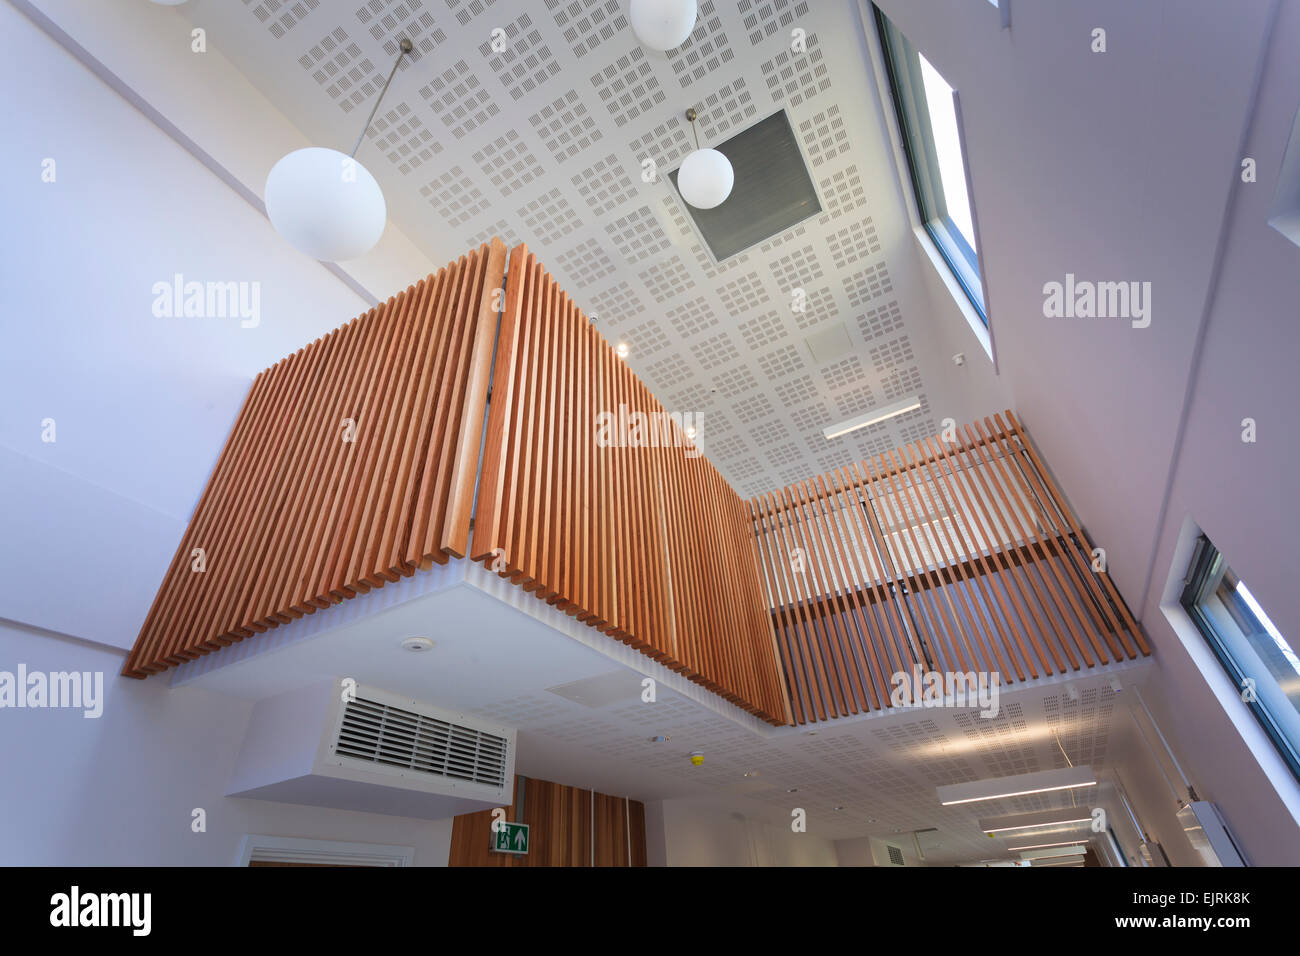 Timber balcony above main communal area of modern college building - Stock Image